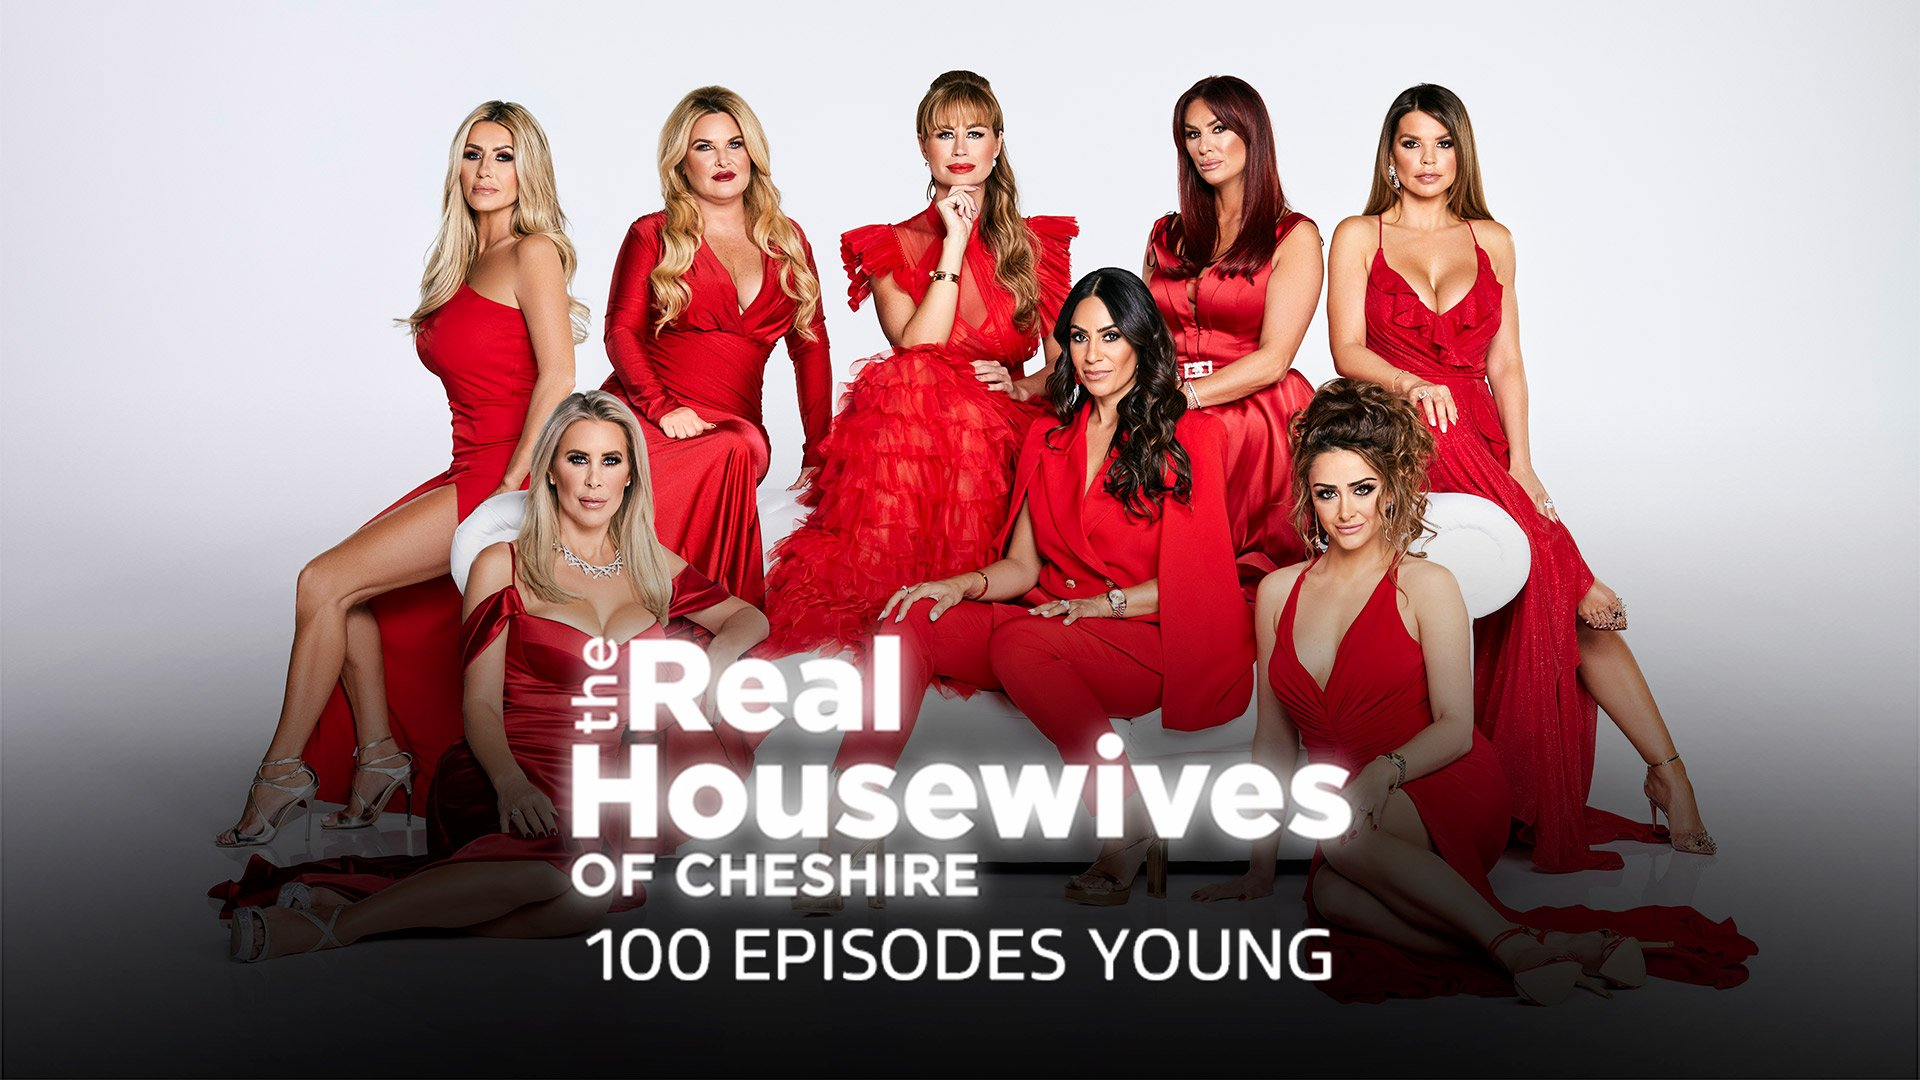 The Real Housewives of Cheshire: 100 Episodes Young on BritBox UK